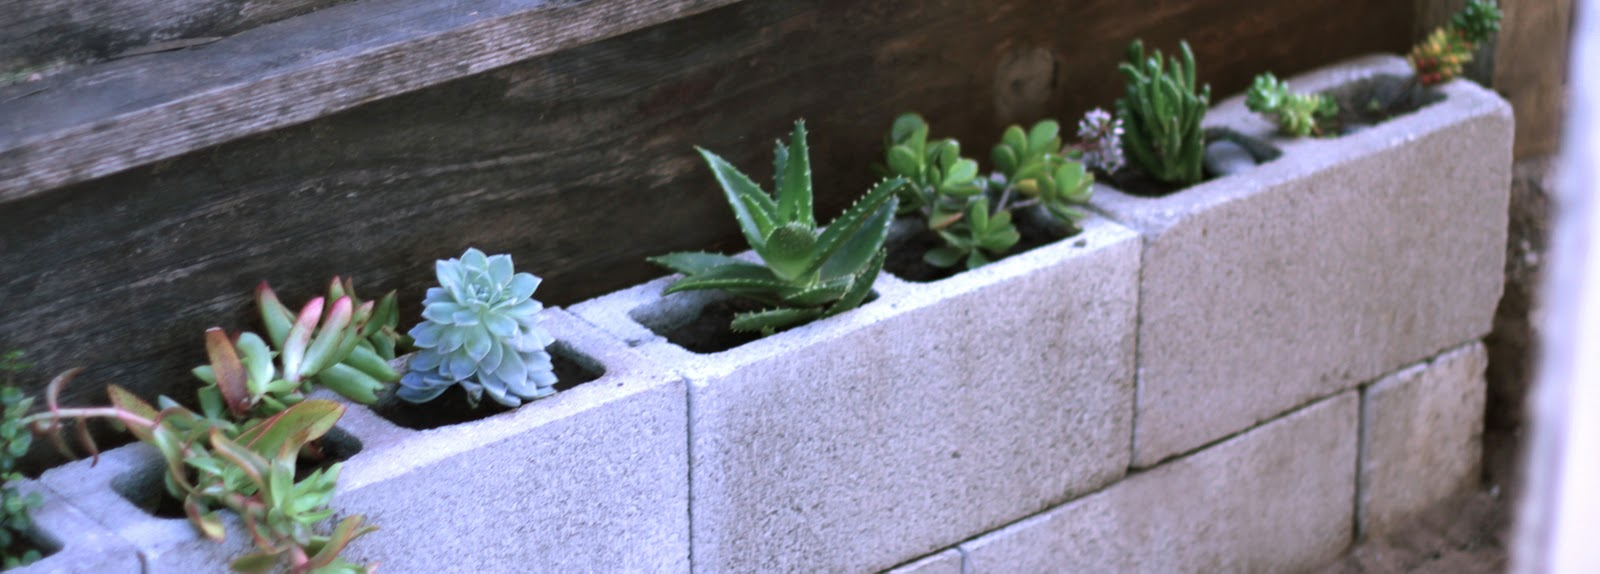 TSTUNN%257E4 25 Stunning Planter Concrete Blocks Alternatives to Transform Your Backyard And That Are All Your Front Porch Needs Interior